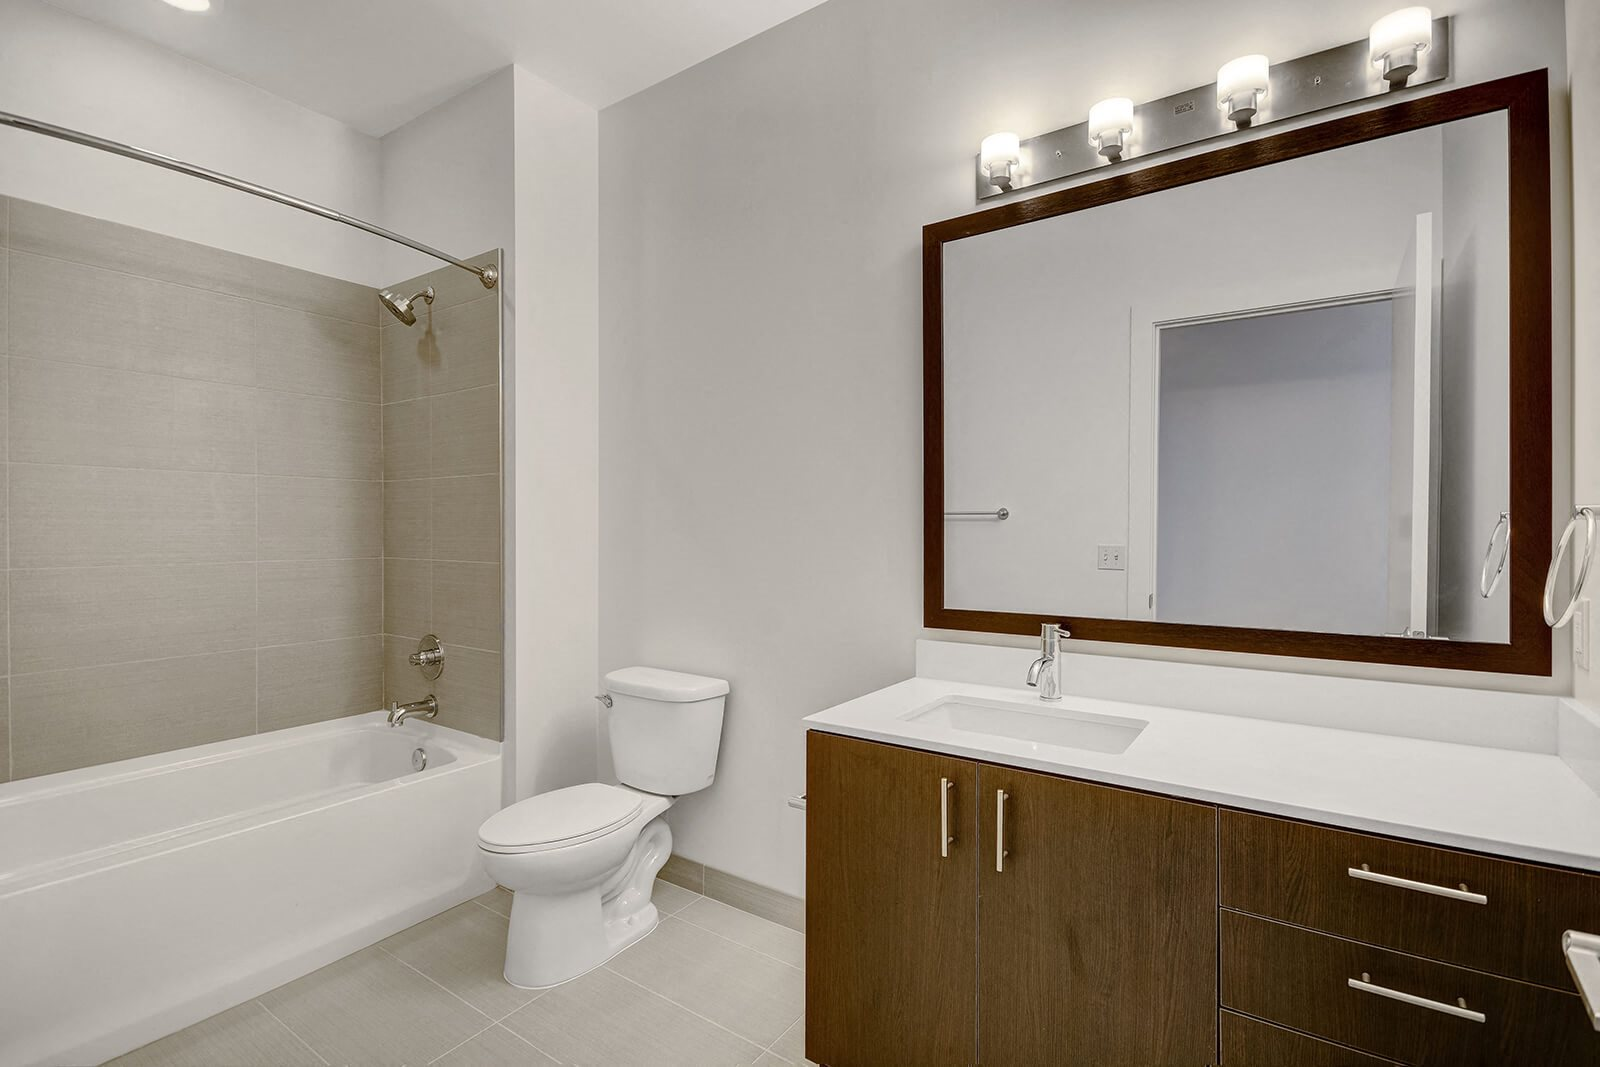 Bathrooms with Large Tub and Shower at Cirrus, 2030 8th Avenue, WA